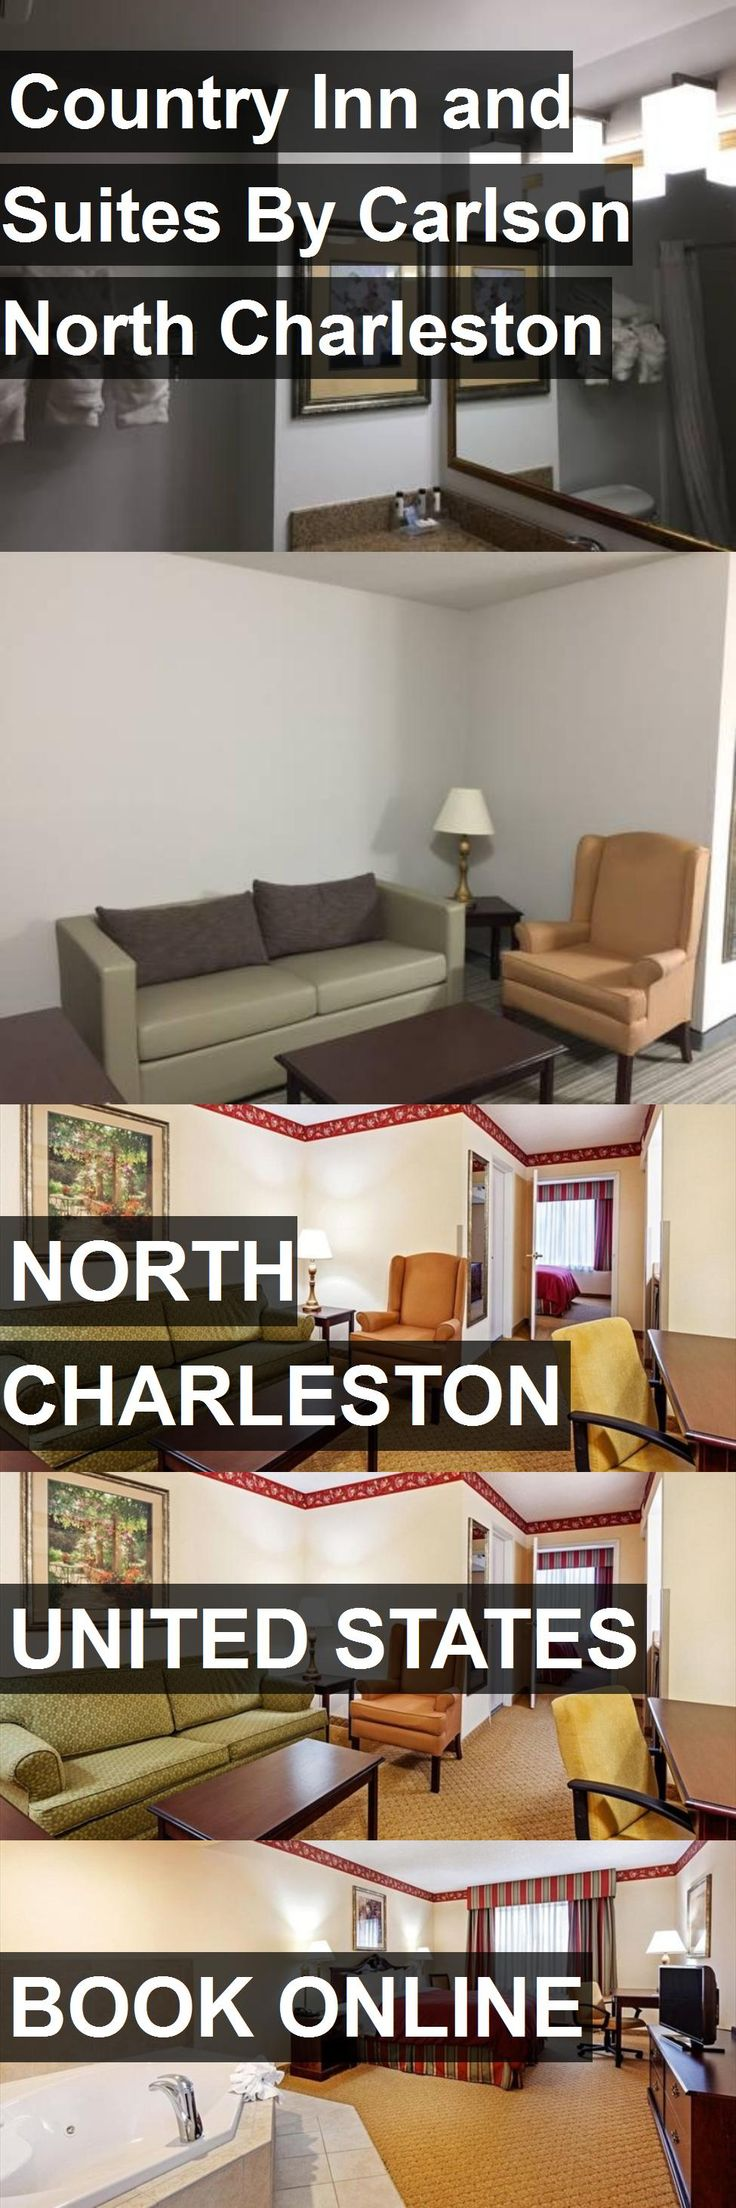 Hotel Country Inn and Suites By Carlson North Charleston in North Charleston, United States. For more information, photos, reviews and best prices please follow the link. #UnitedStates #NorthCharleston #travel #vacation #hotel